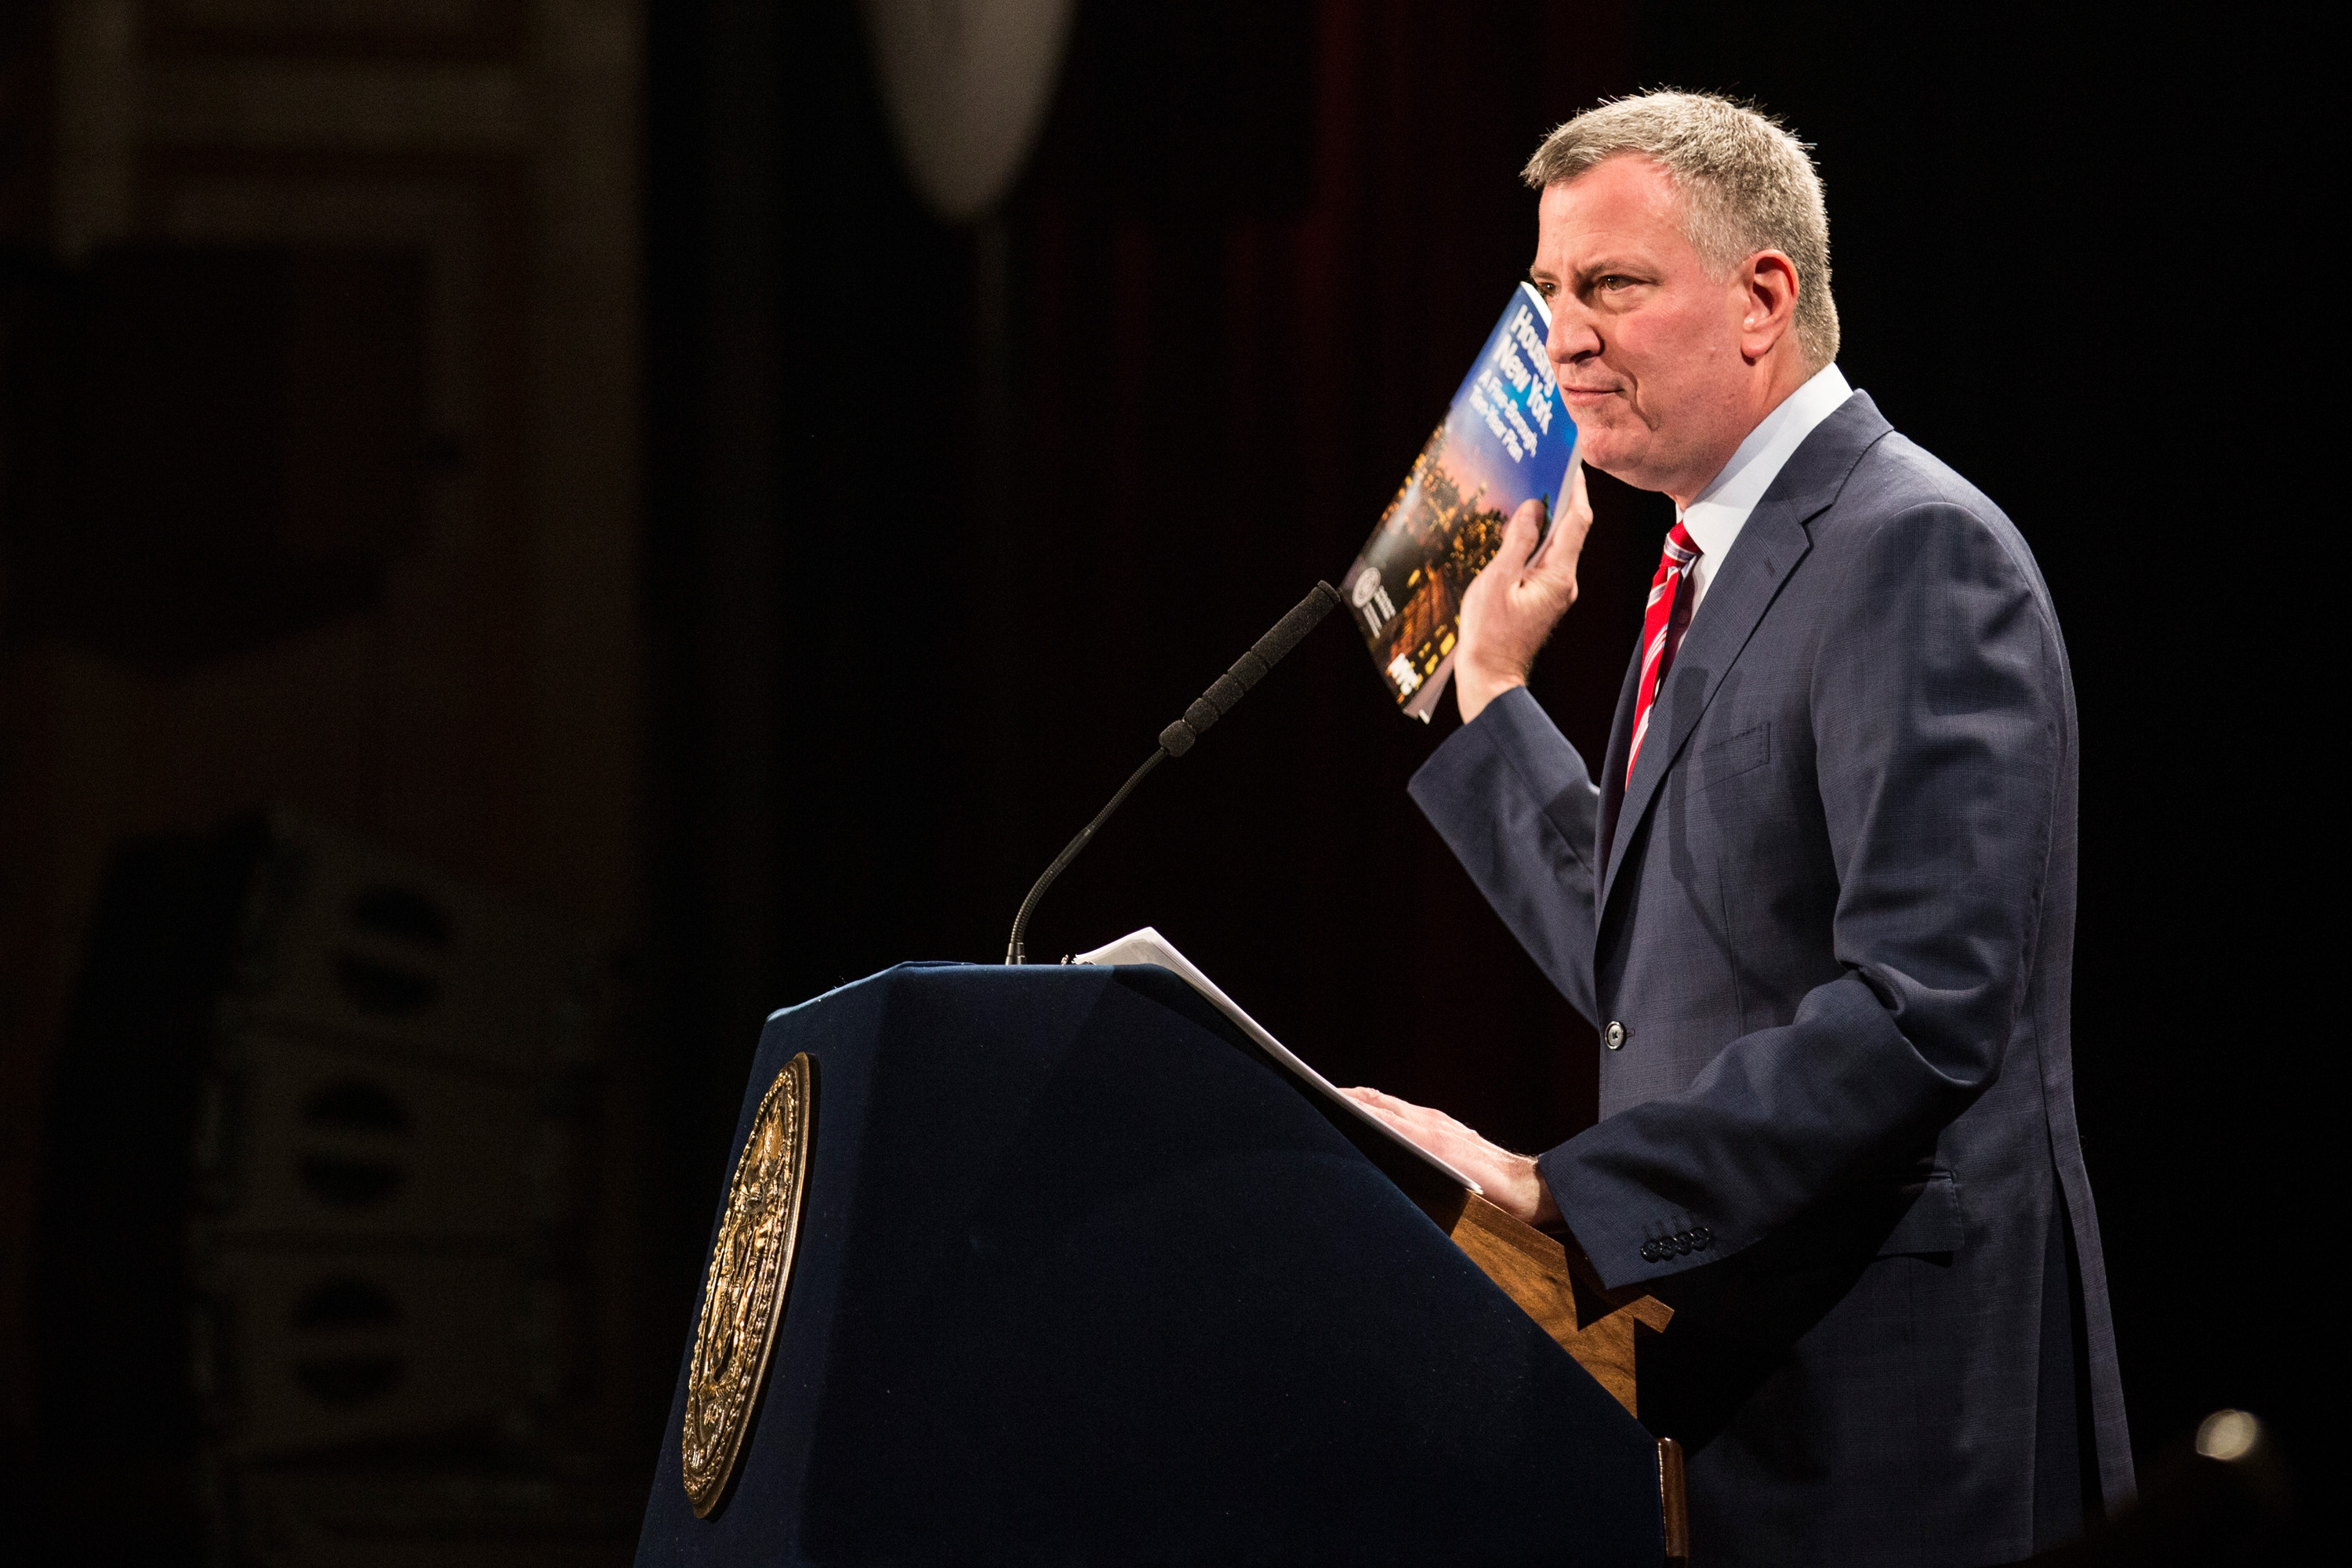 New York City Mayor Bill de Blasio delivers his State of the City address at Baruch College on February 3, 2015 in New York City.   (Photo by Andrew Burton/Getty Images)